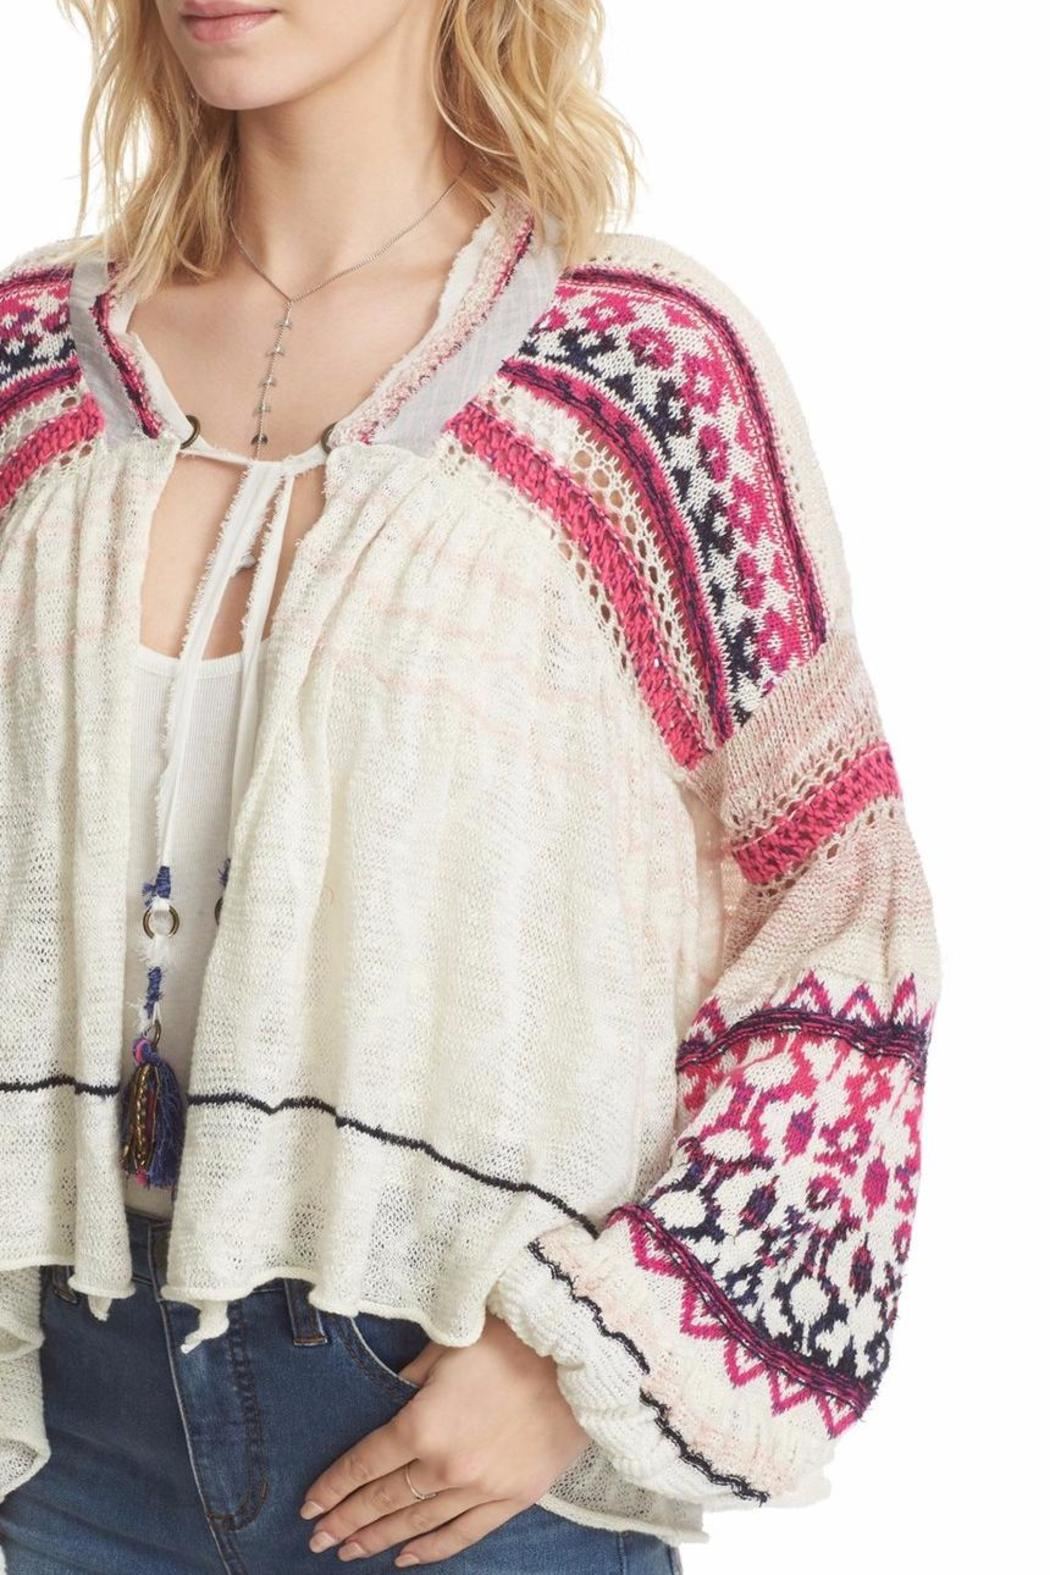 Free People Dreamland Laid Back Cardigan - Front Cropped Image